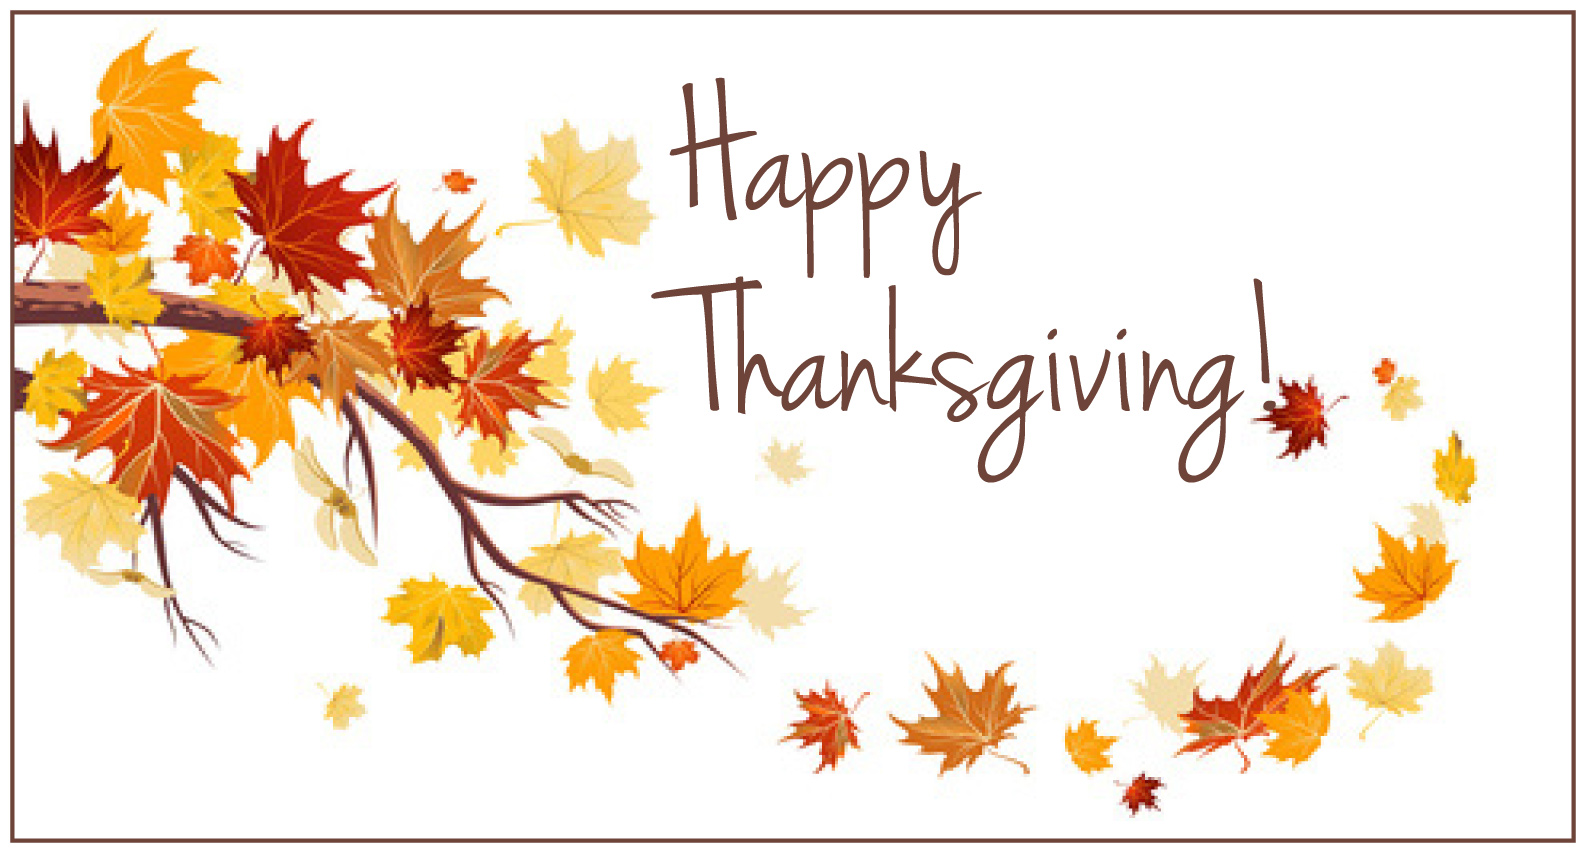 Happy Thanksgiving Image 2016, Pictures, Banner, Clipart.